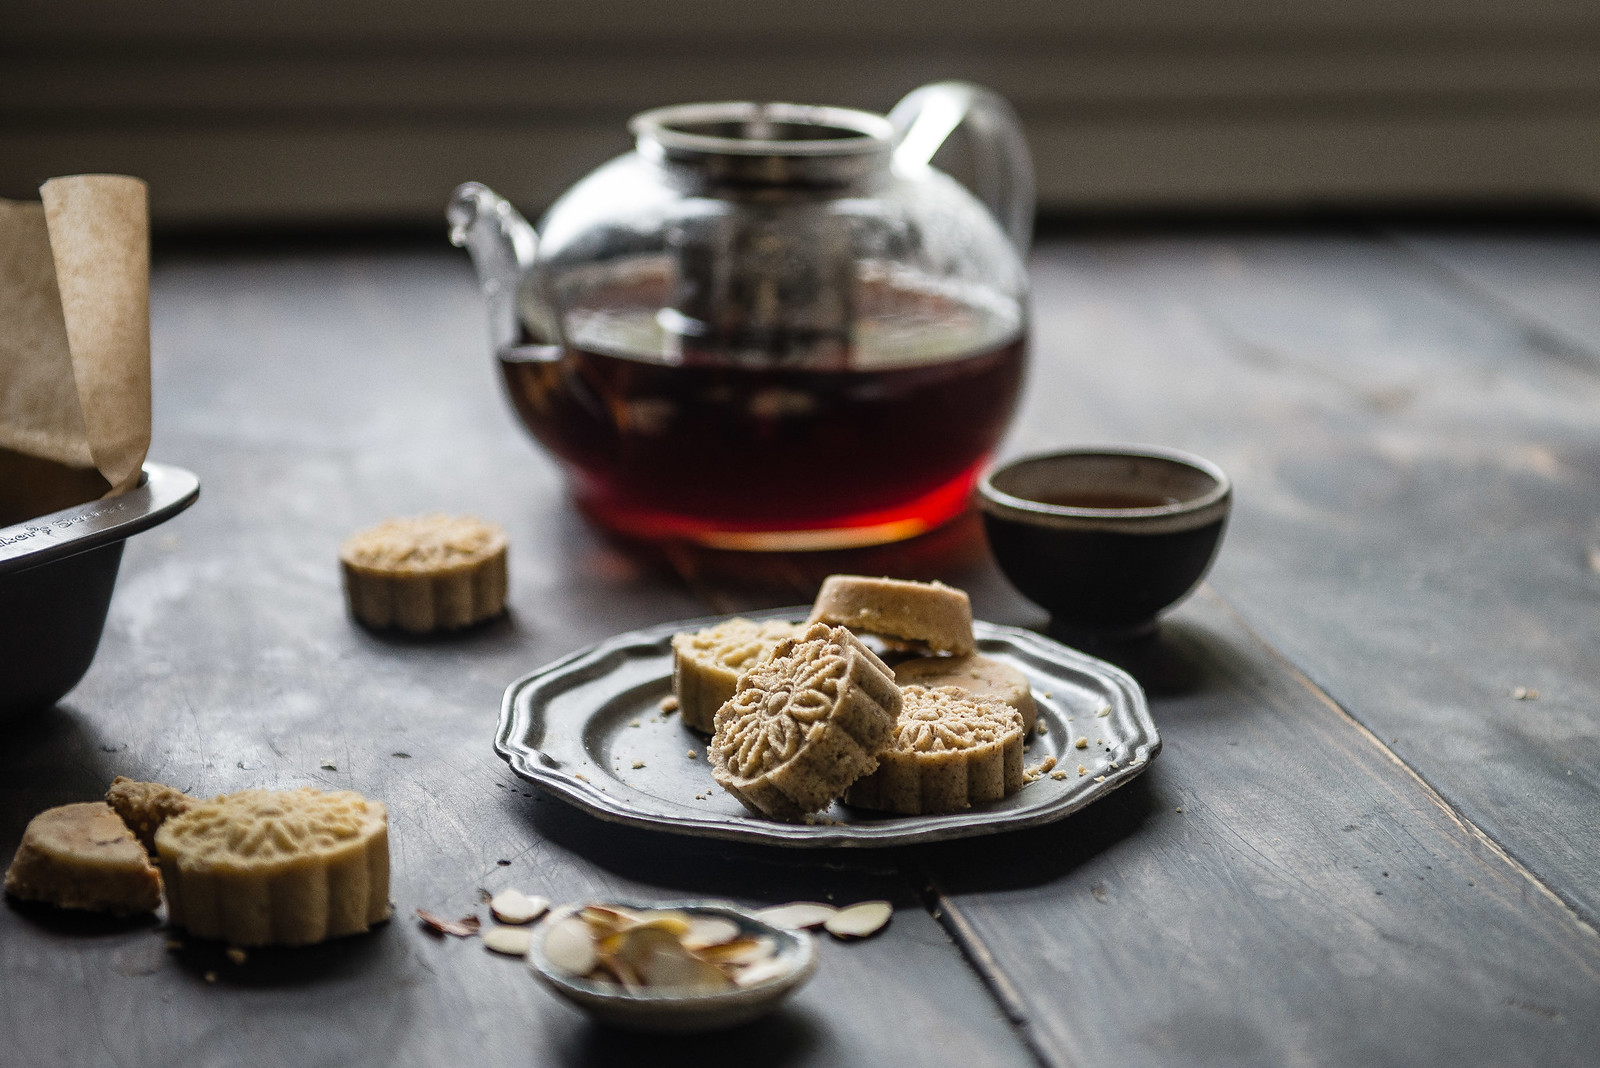 macau-style almond cookies | two red bowls